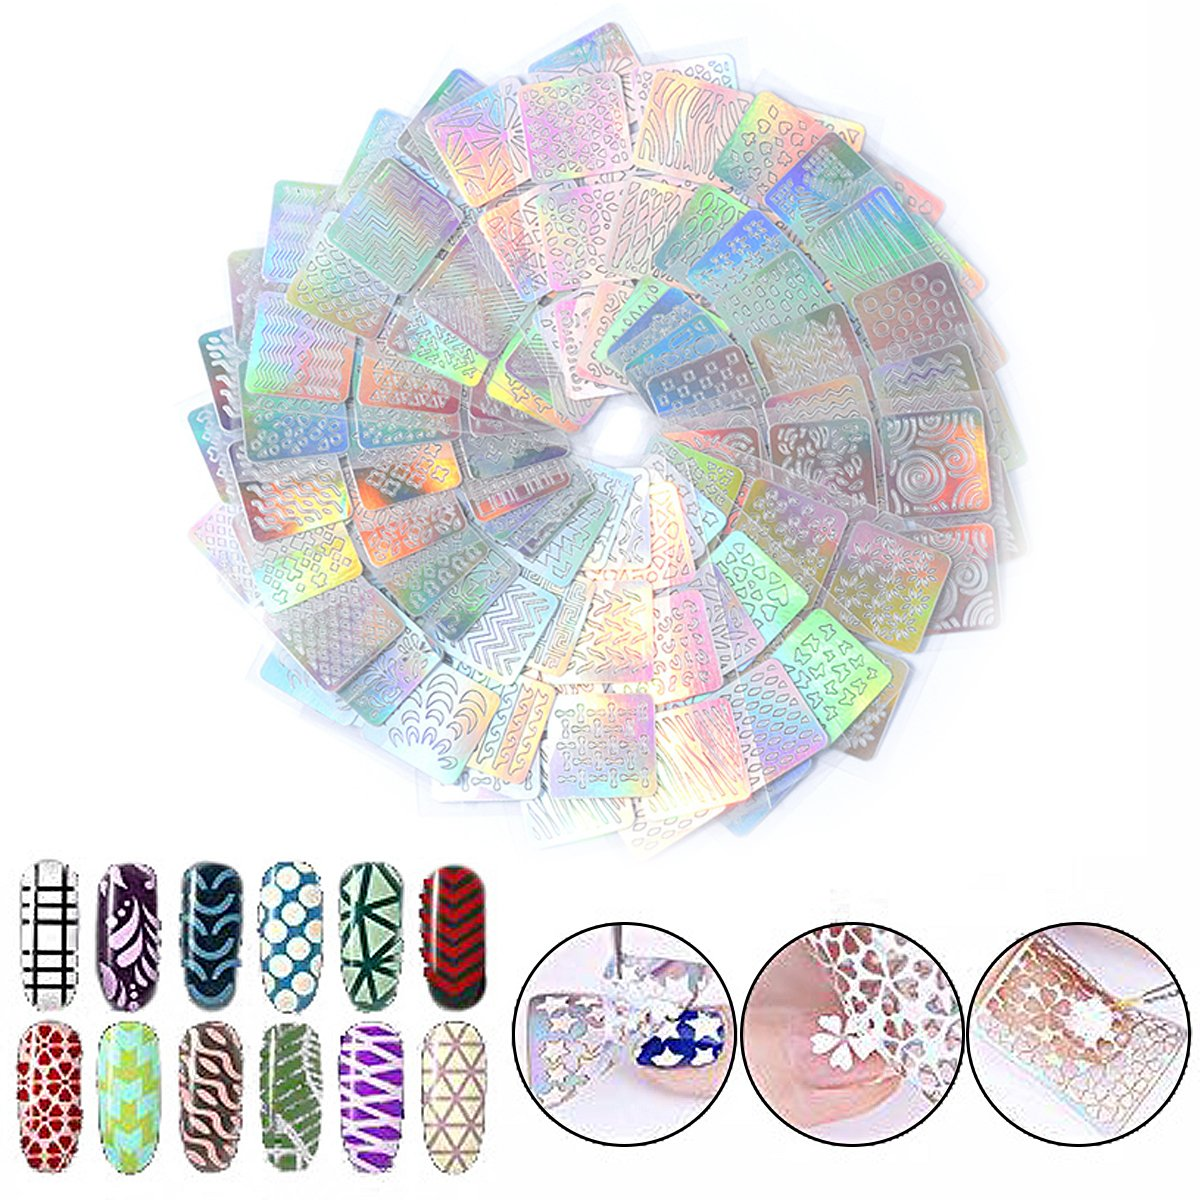 Skymore 144pcs Nail Stamping Stencils Nails Stickers Set, 24 Sheets 72 Different Designs Nail Stamping Plates with 6 Nail Symbol Sponges Wispury